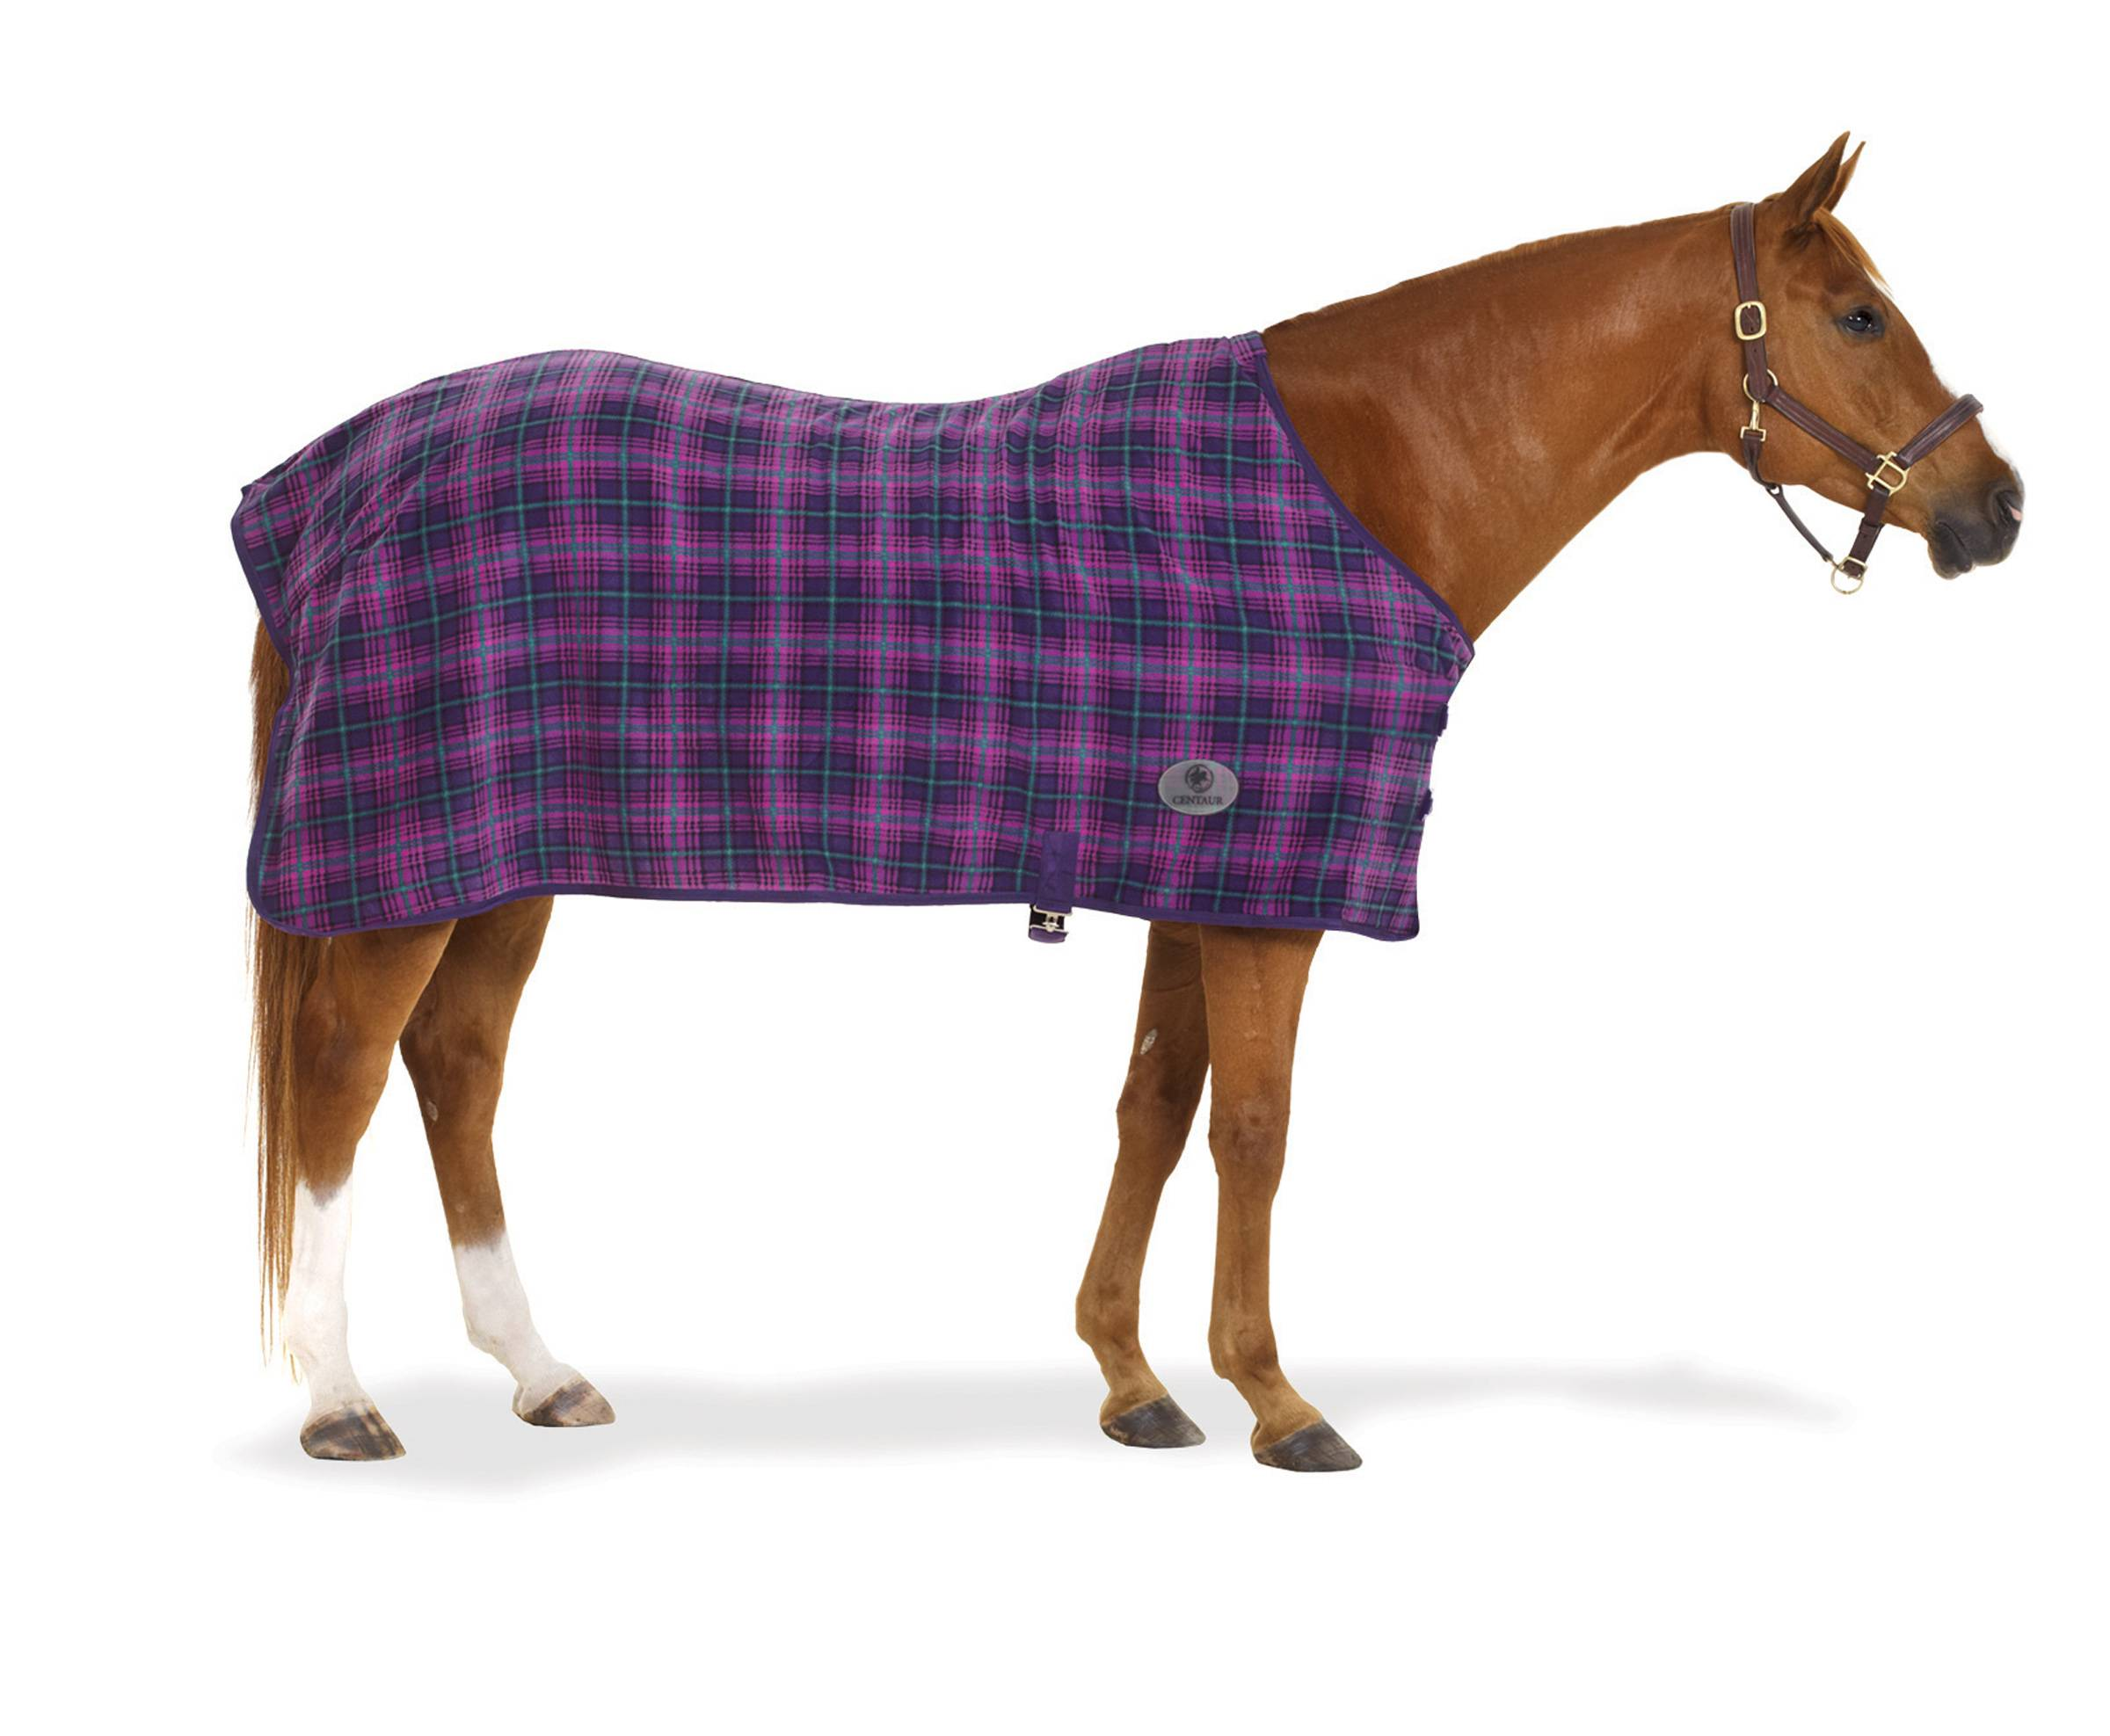 Centaur 220g Fleece Sheet - Plaid